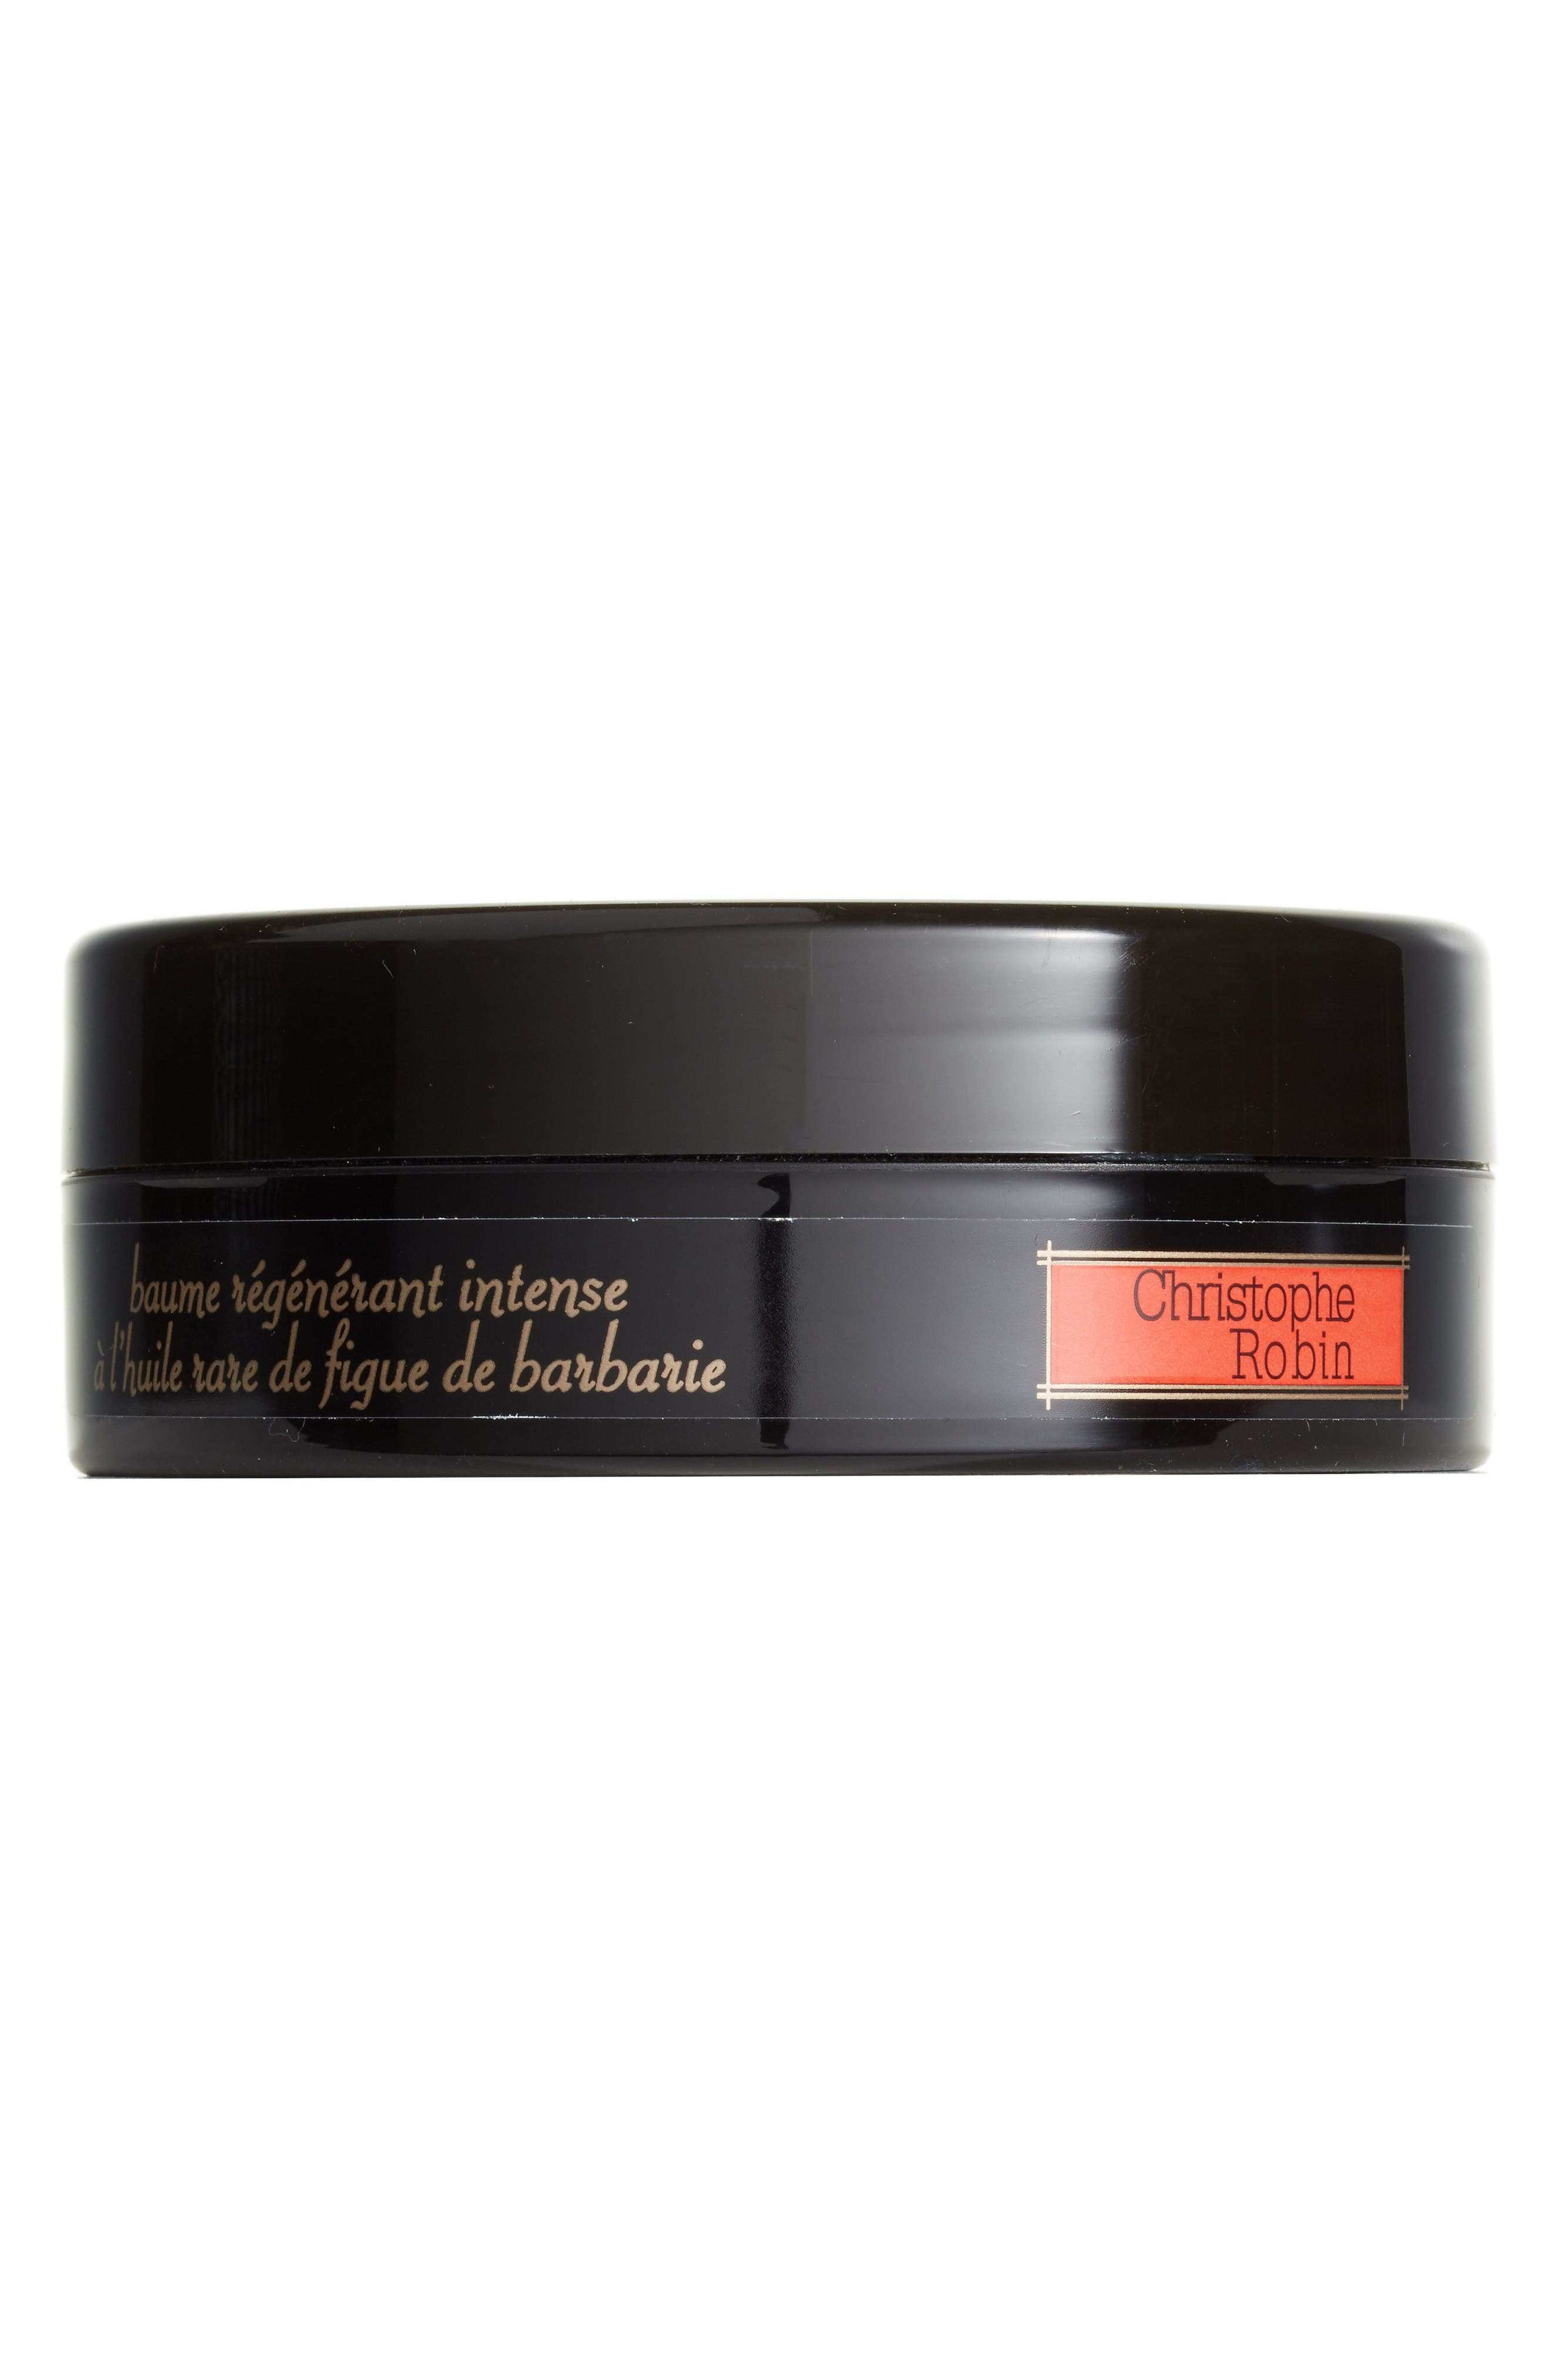 Alternate Image 1 Selected - SPACE.NK.apothecary Christophe Robin Intense Regenerating Balm with Rare Prickly Pear Oil